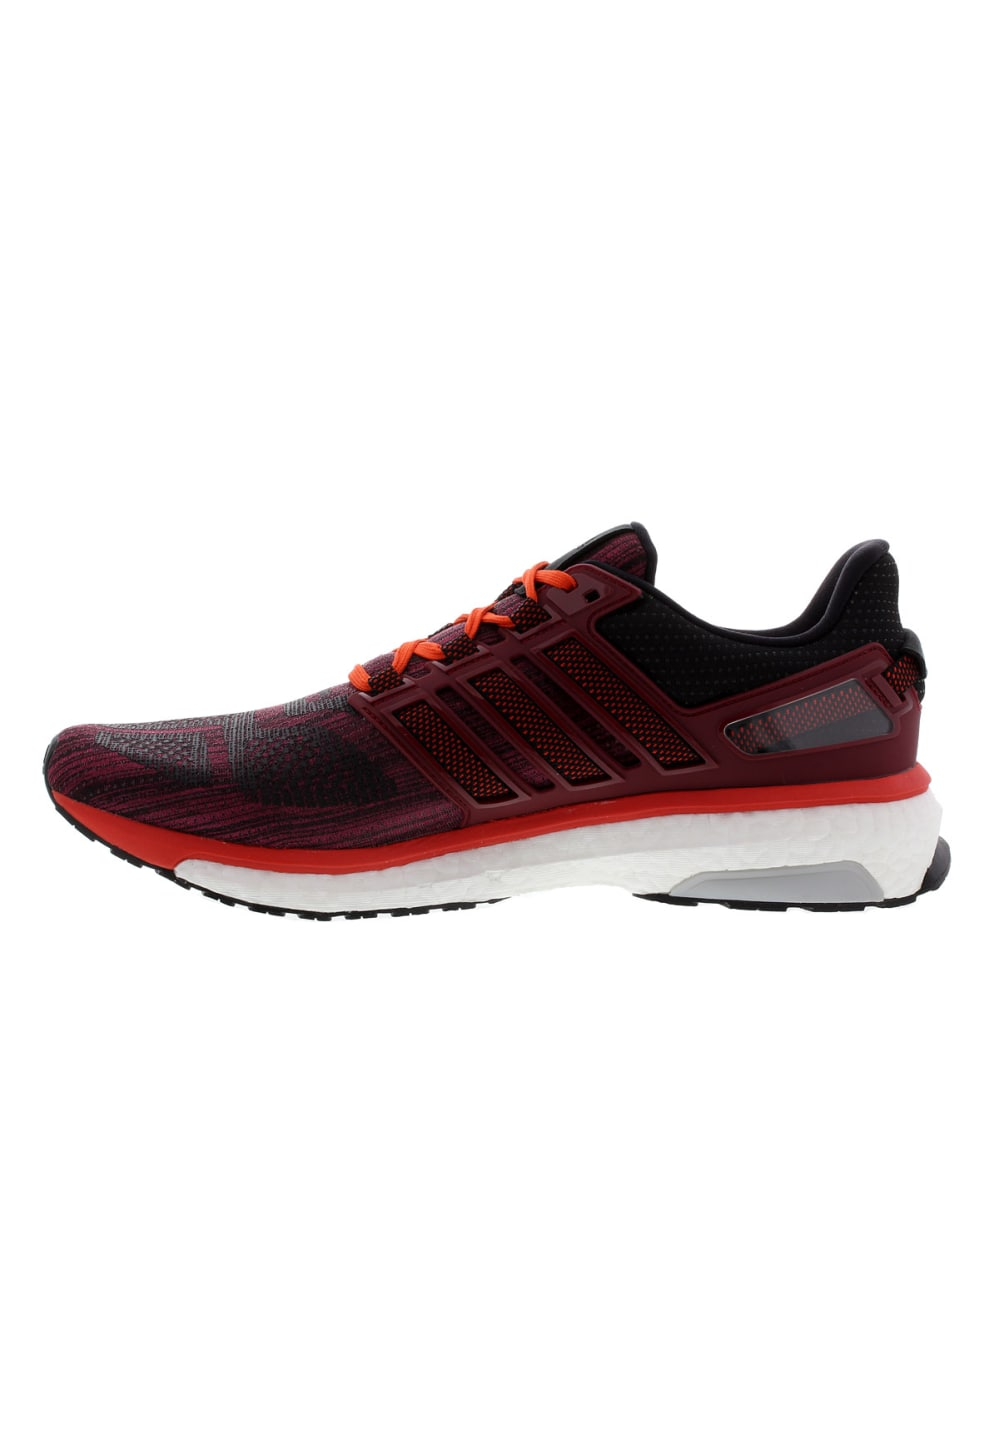 d0516c6f2e49b5 Next. -50%. This product is currently out of stock. adidas. Energy Boost 3 M  - Running shoes for Men